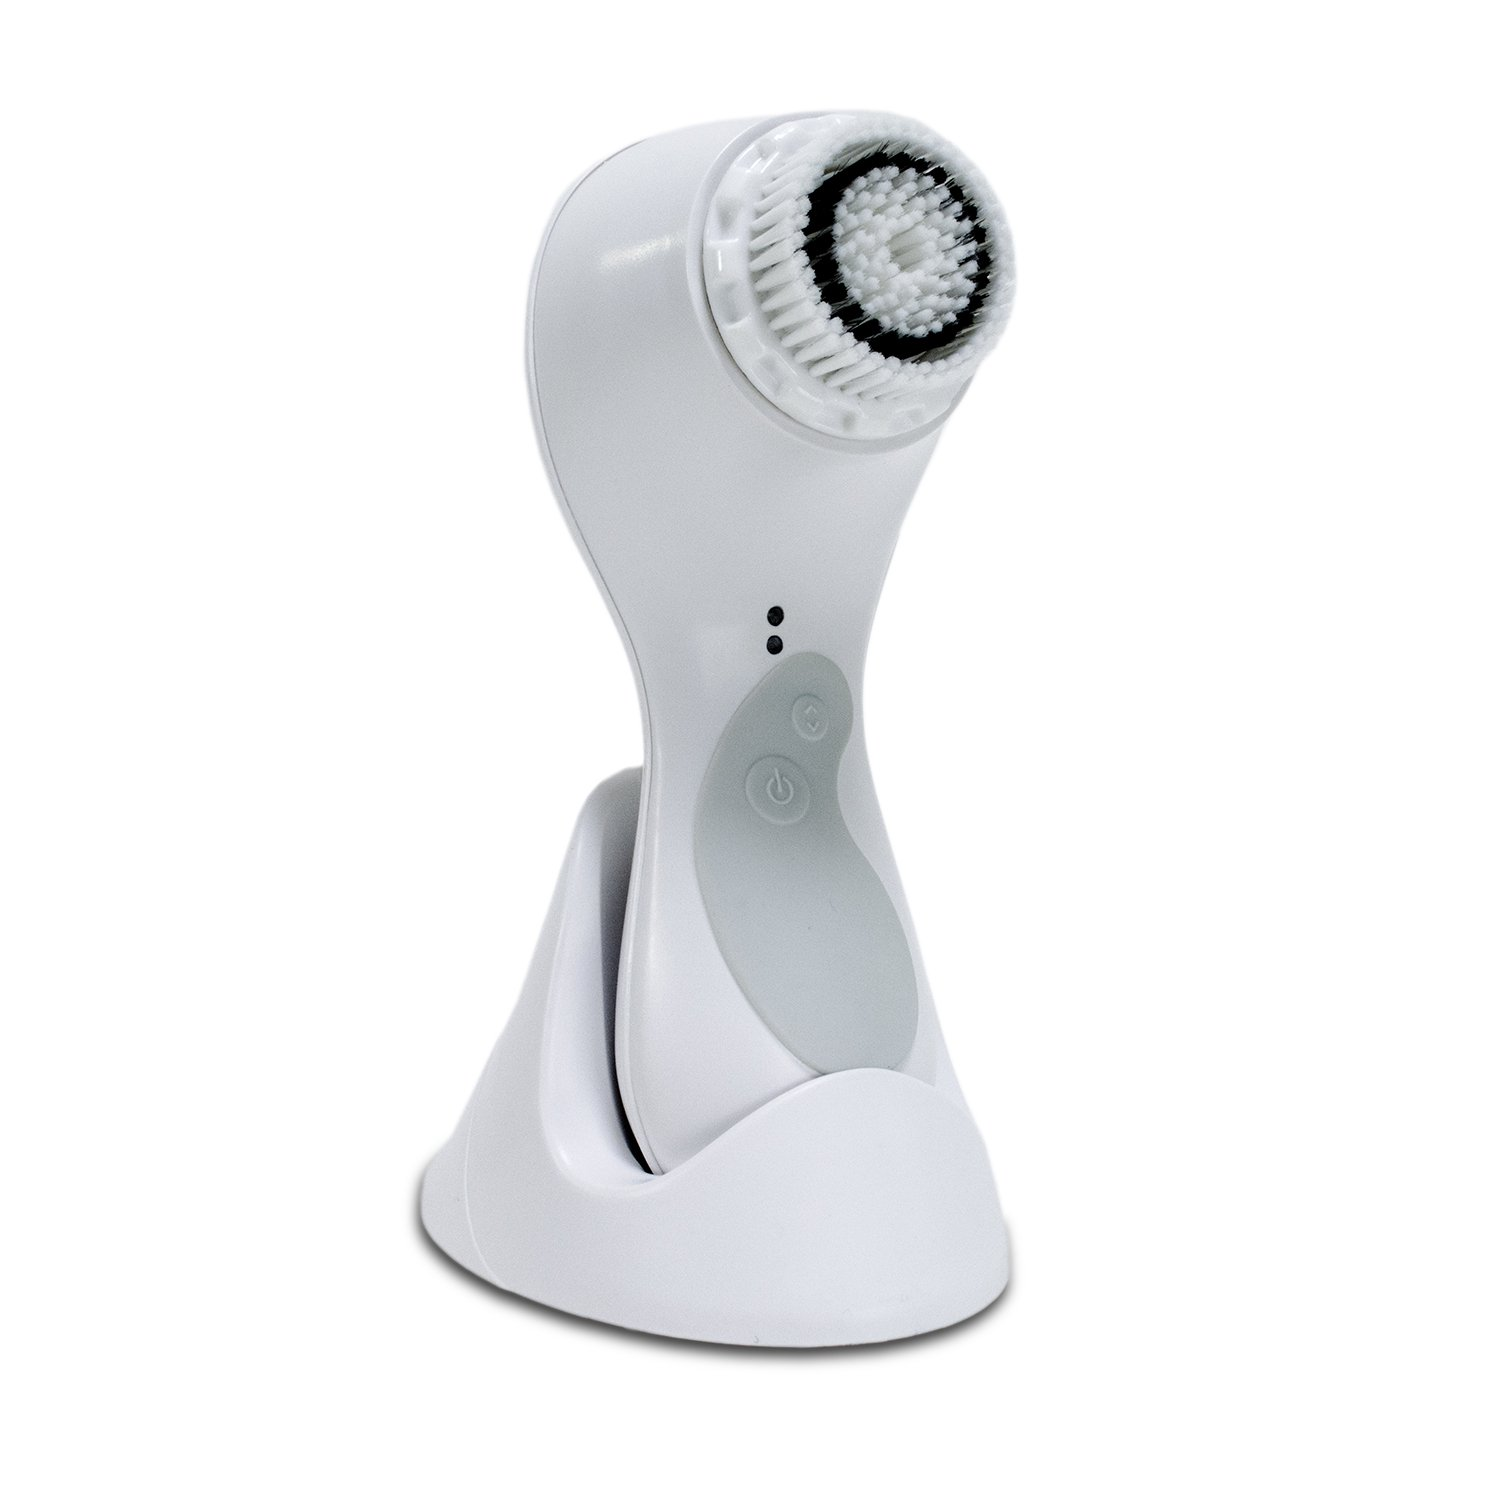 Healthpro Professional Sonic Rechargable Exfoliating Cleansing Face Brush with 2 Heads and Charger